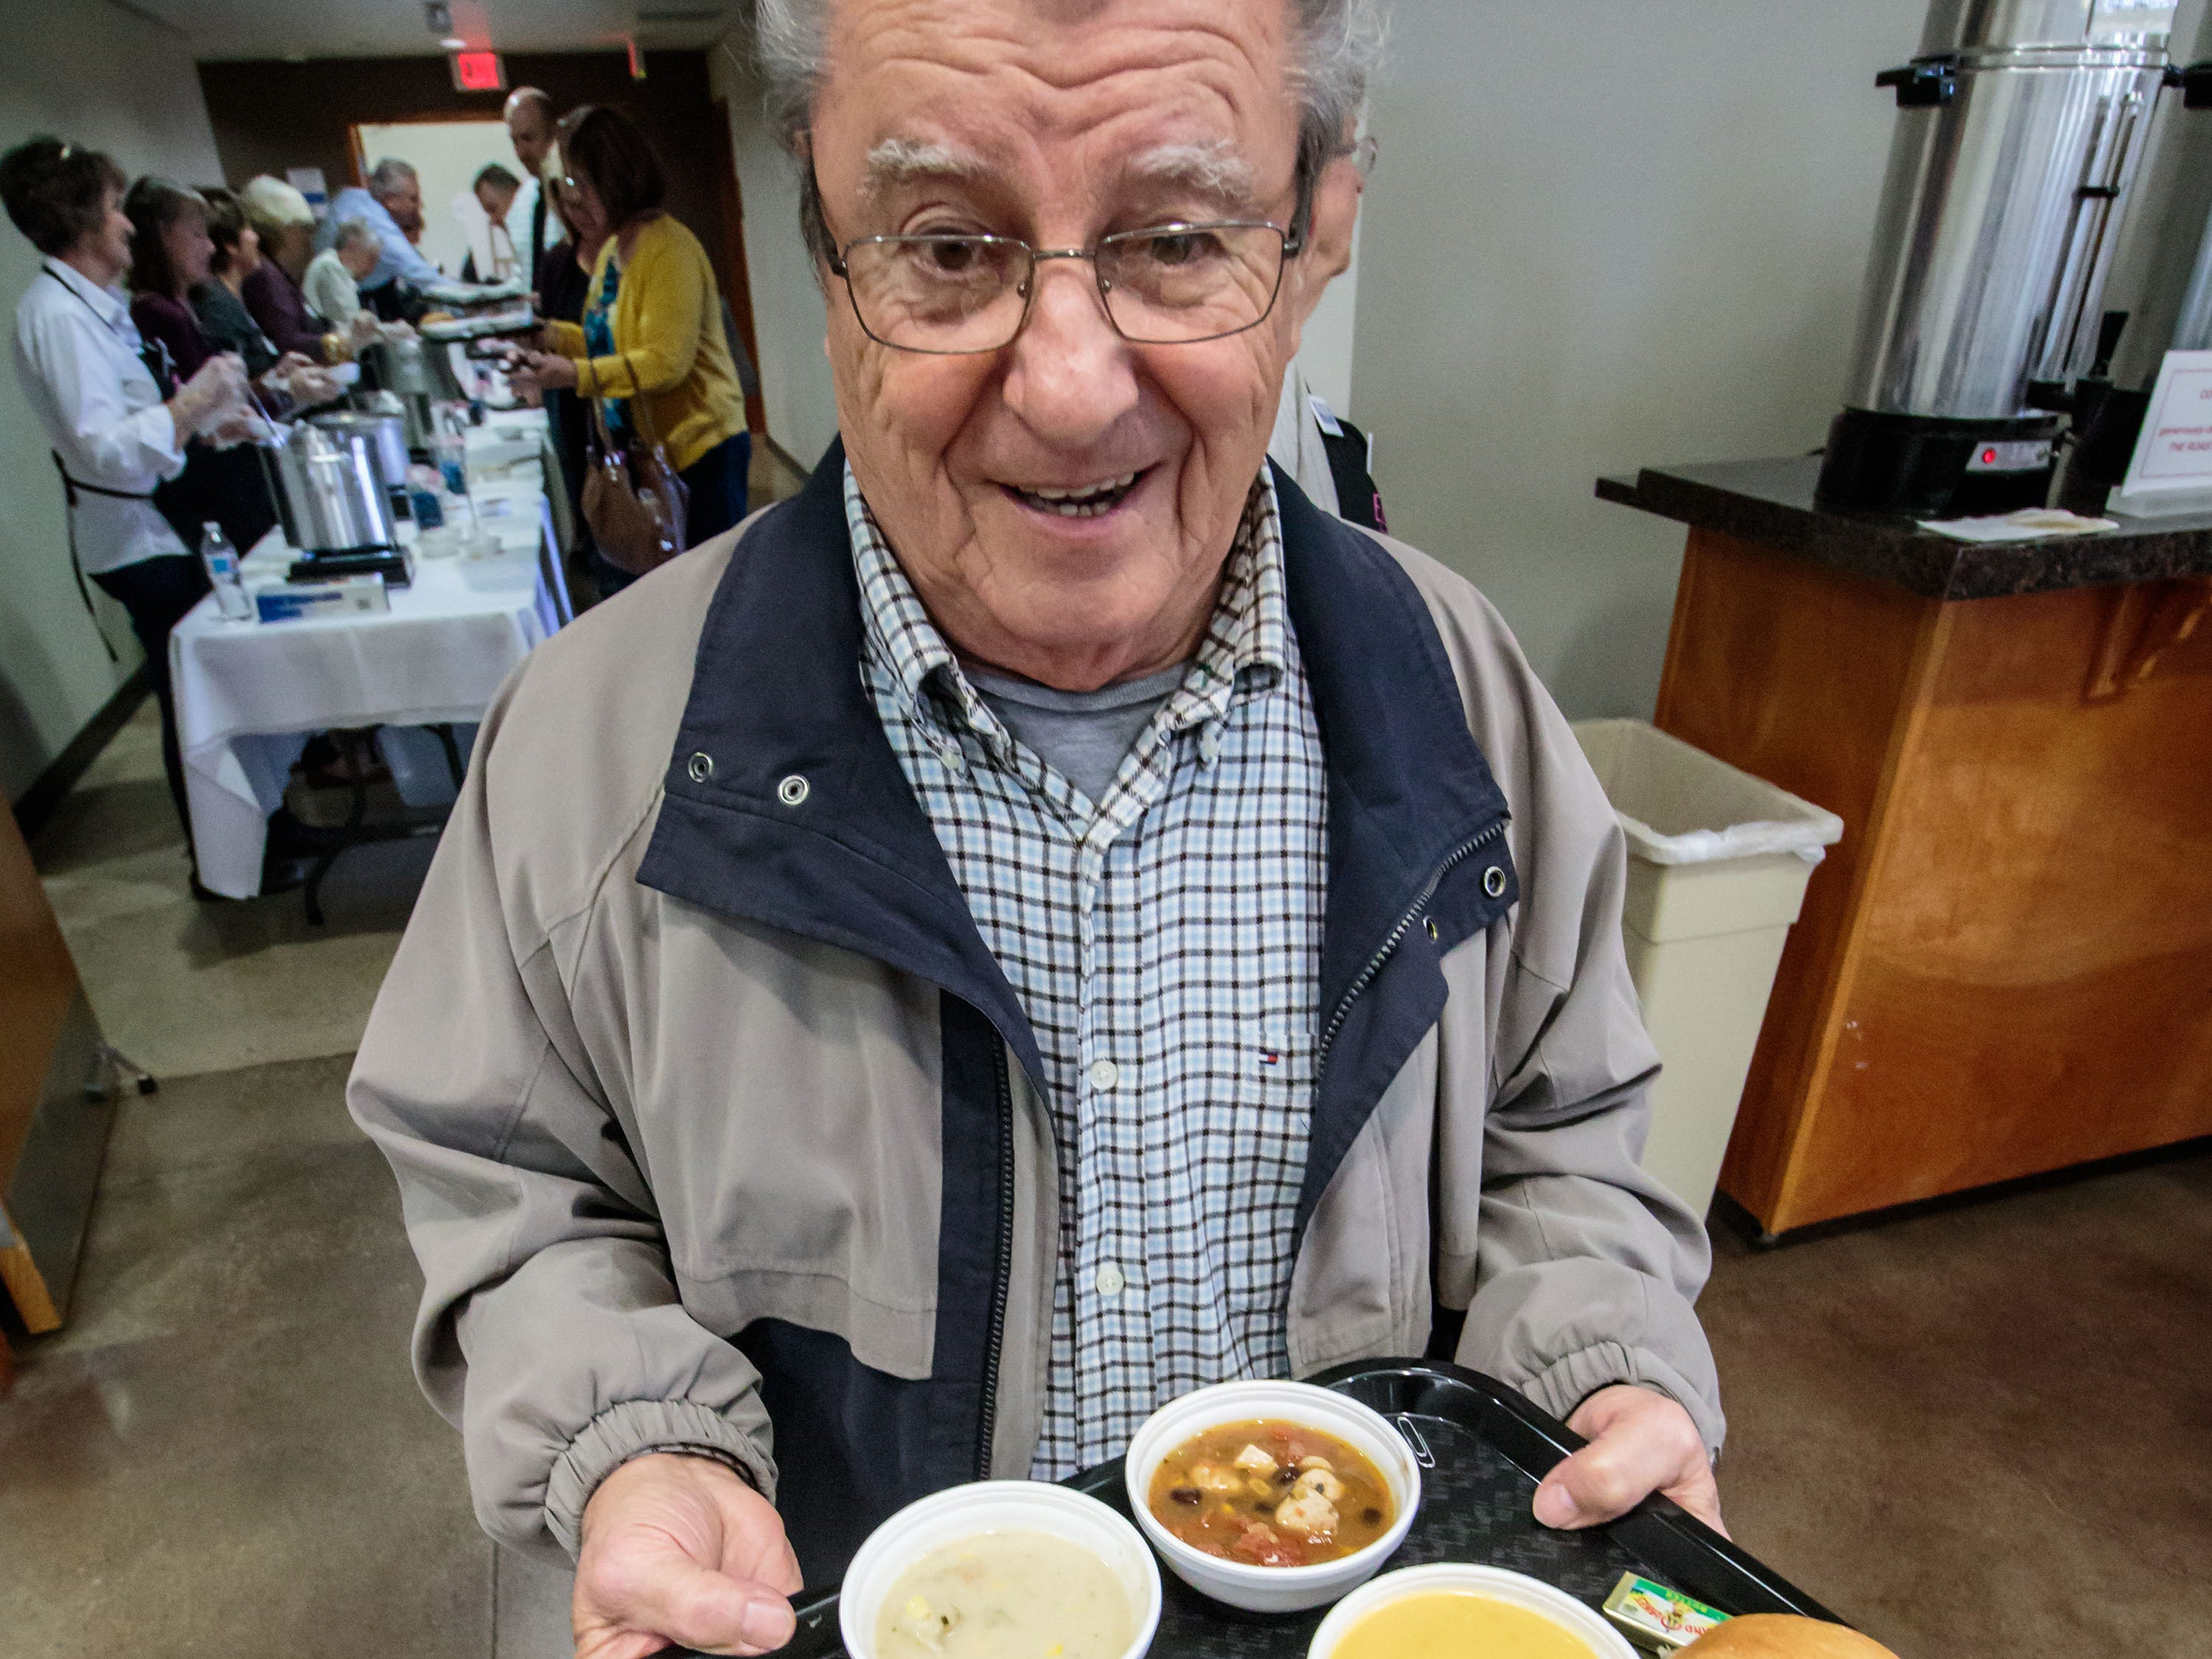 Franz Schmidt of Cedarburg takes part in the Empty Bowls fundraising event at the Ozaukee Pavilion in Cedarburg on Thursday, Nov. 1, 2018. Proceeds from the event will benefit Family Sharing's food pantry and provide 600 Ozaukee County families with Thanksgiving dinners.